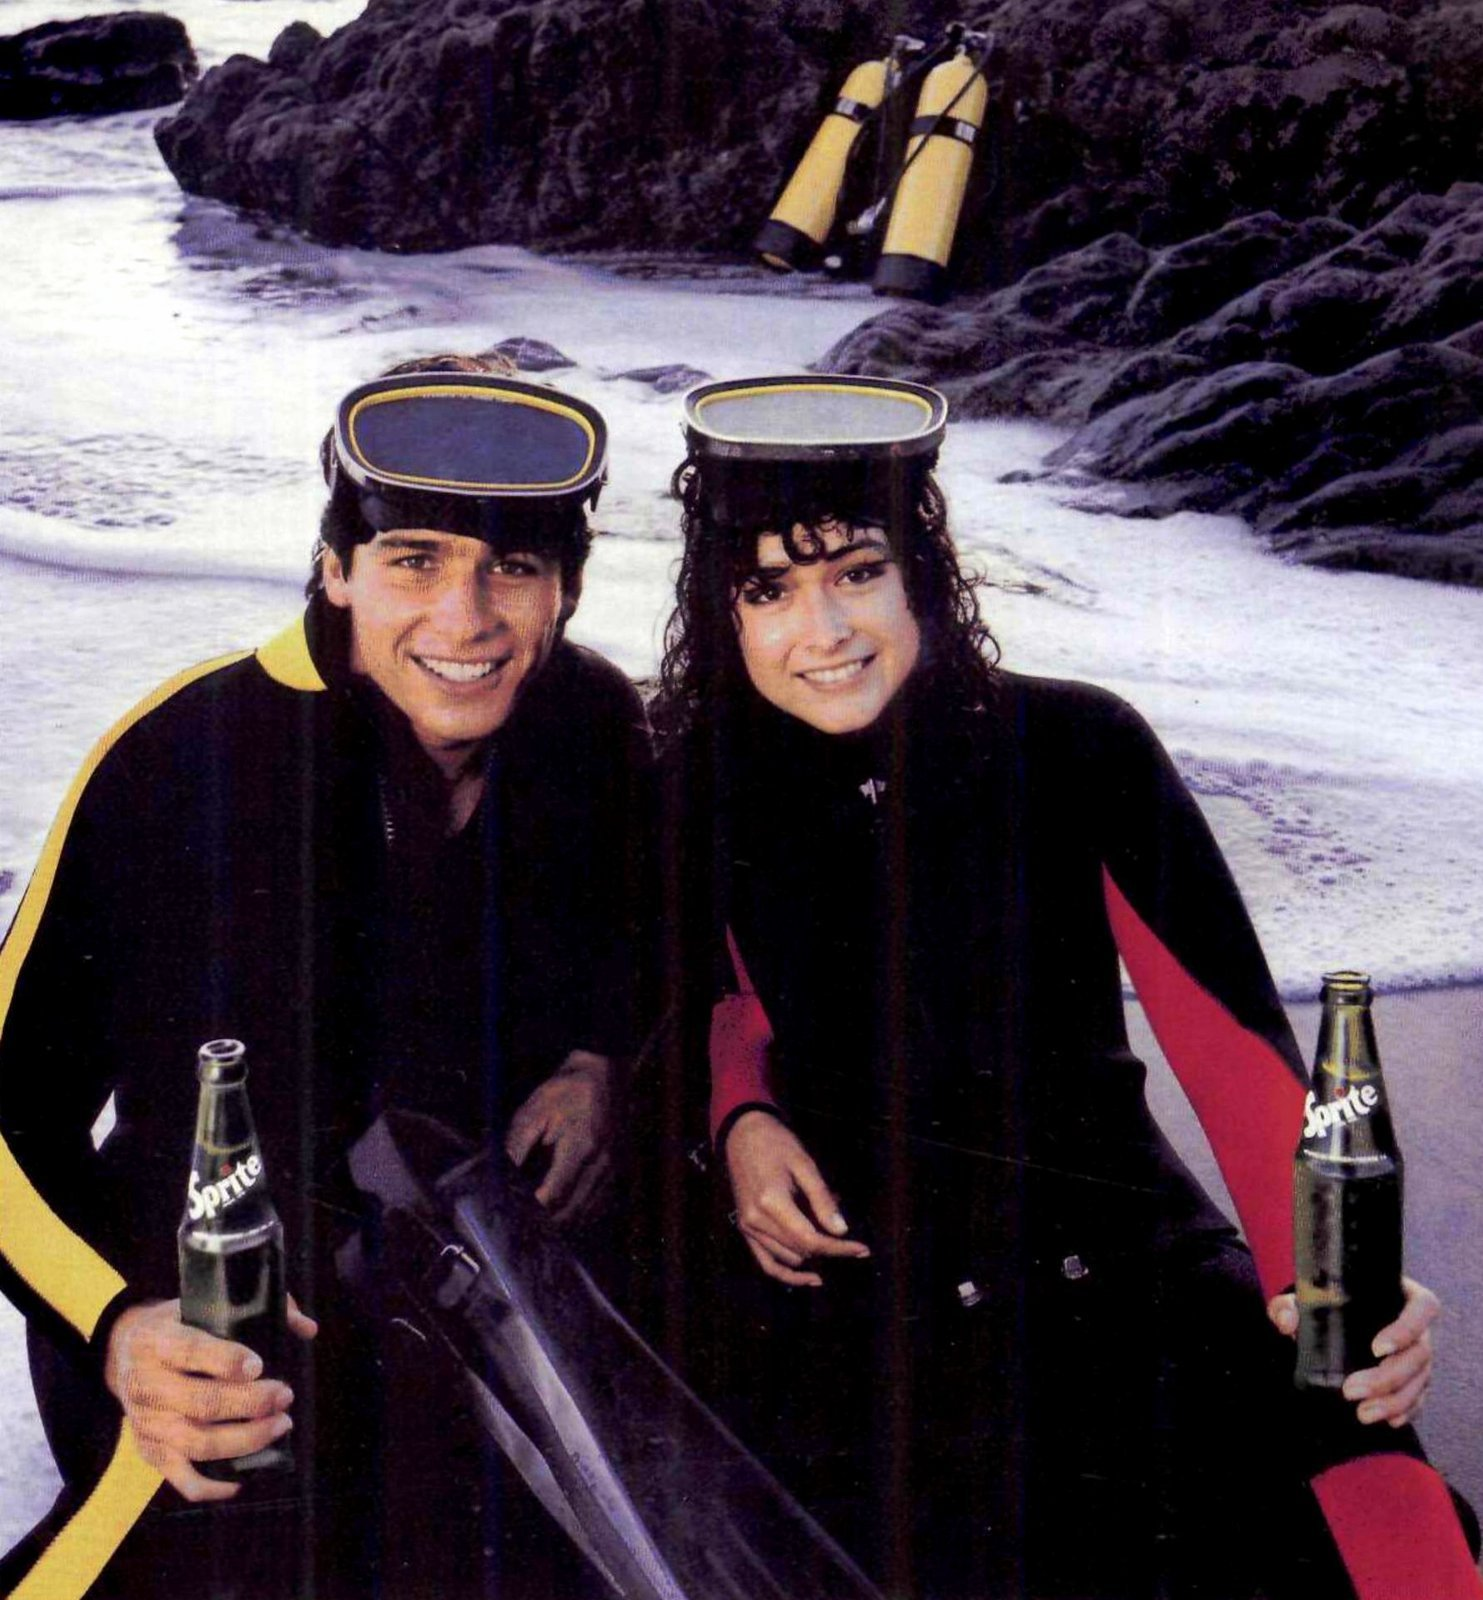 Scuba diving with Sprite (1984)